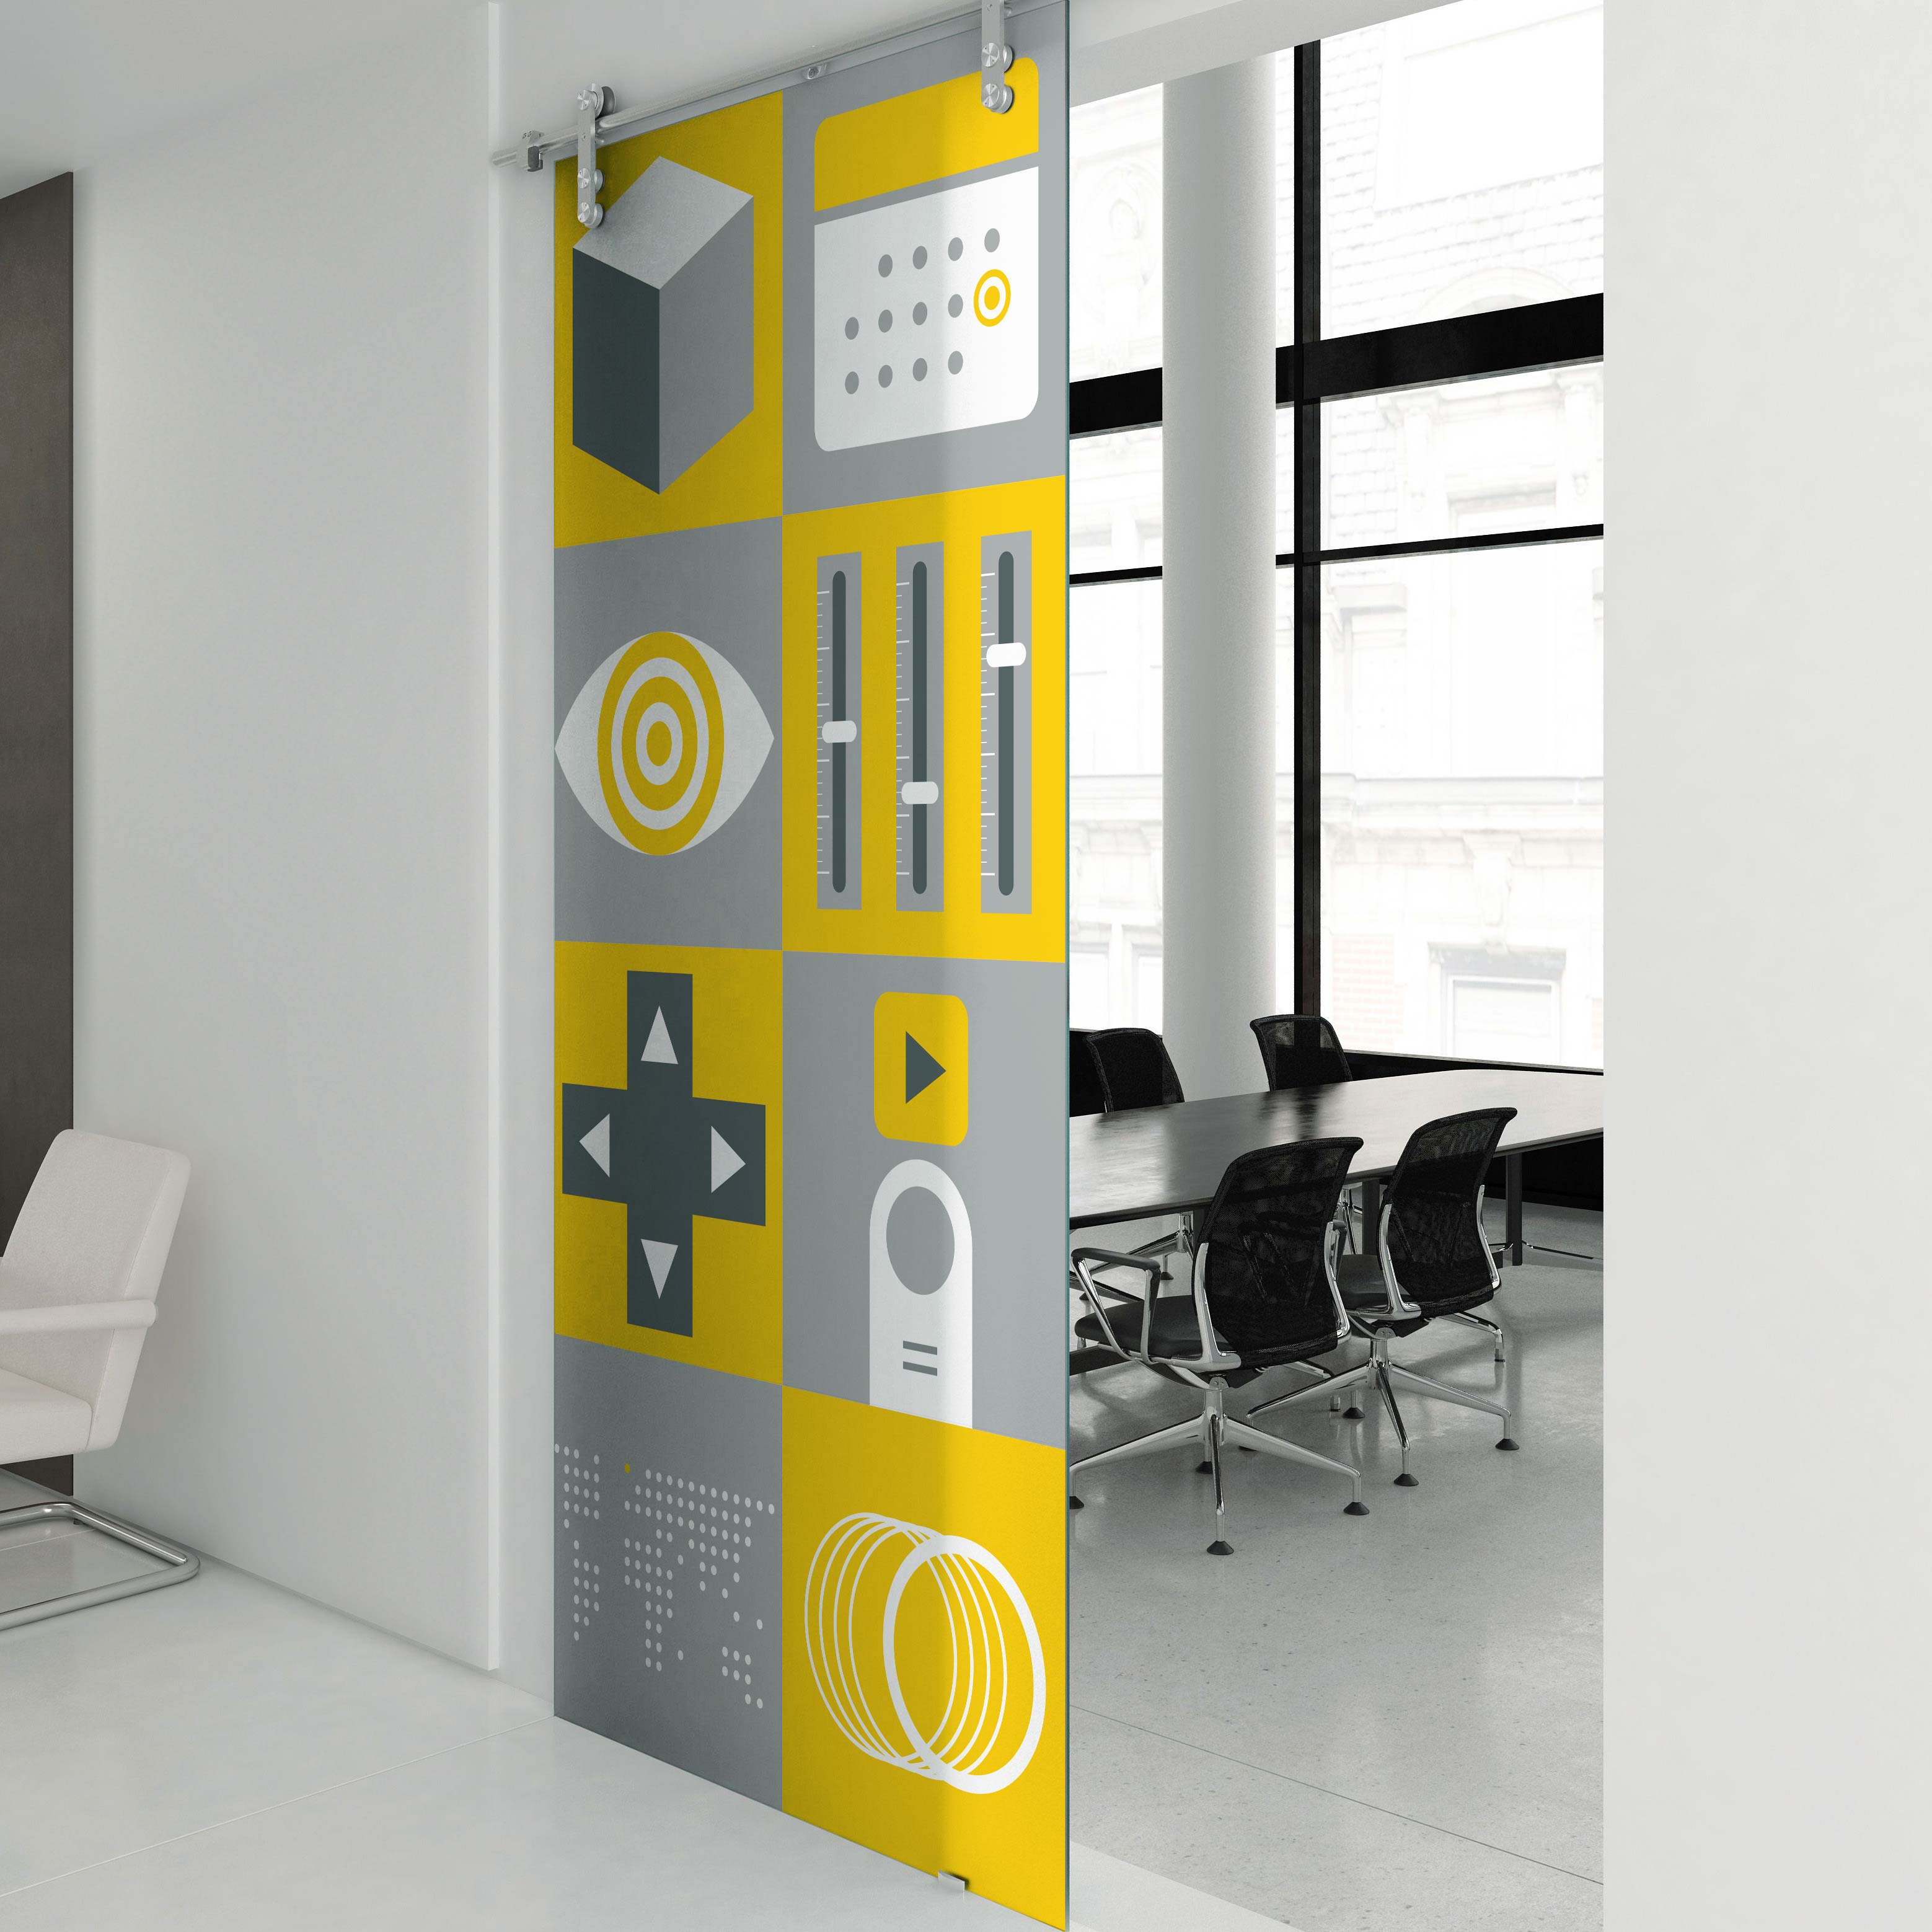 Interference Pattern animation studio internal environmental graphics designed by Monumentum Brands